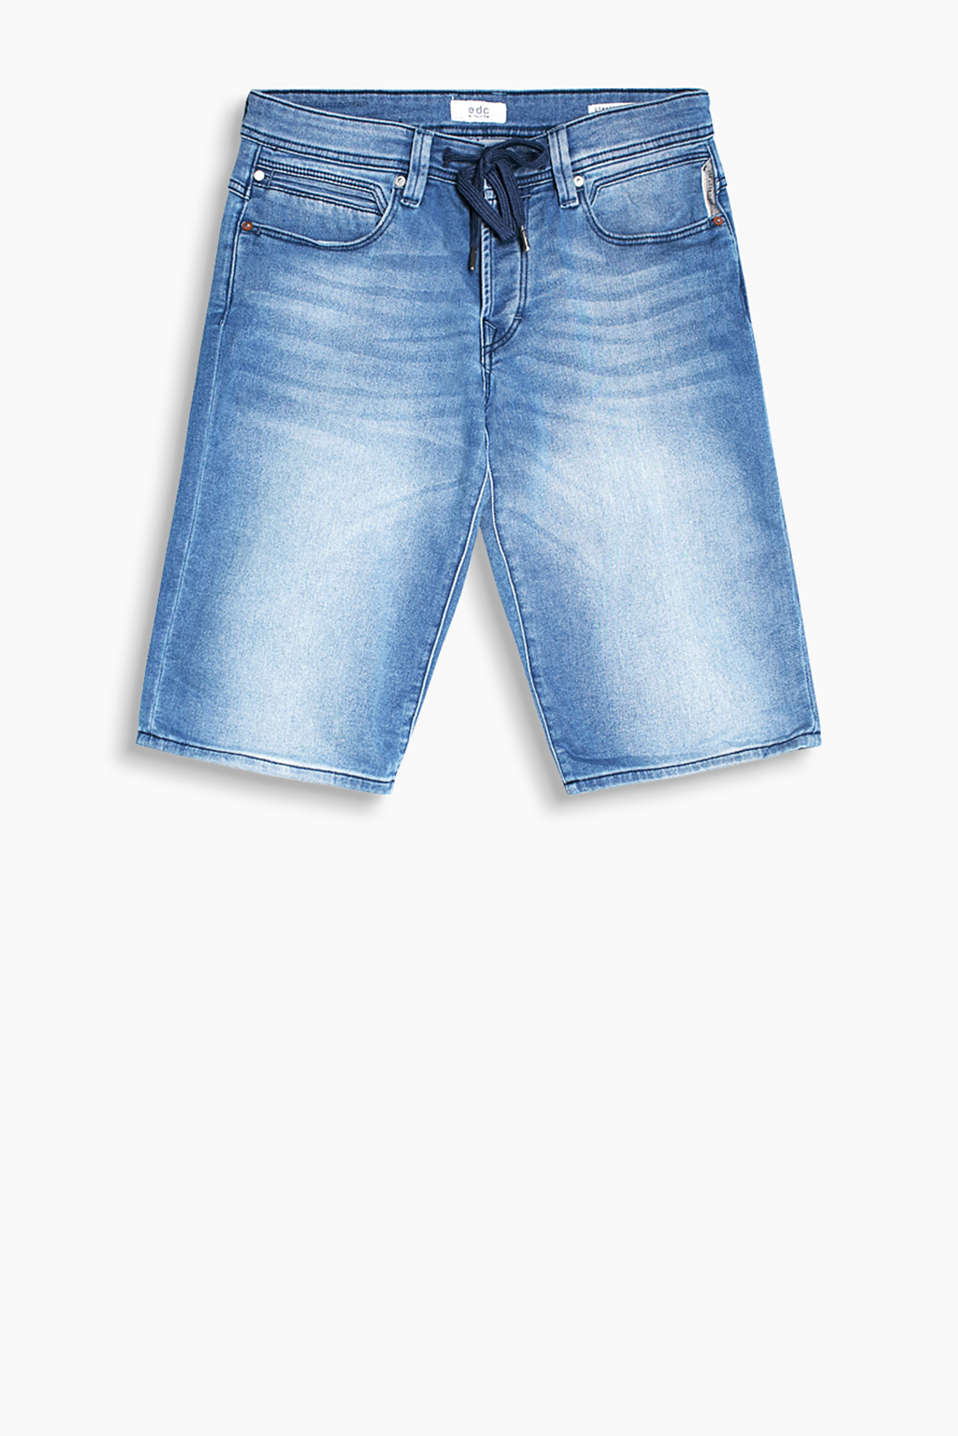 Comfy and stretchy: denim shorts with garment-washed effects